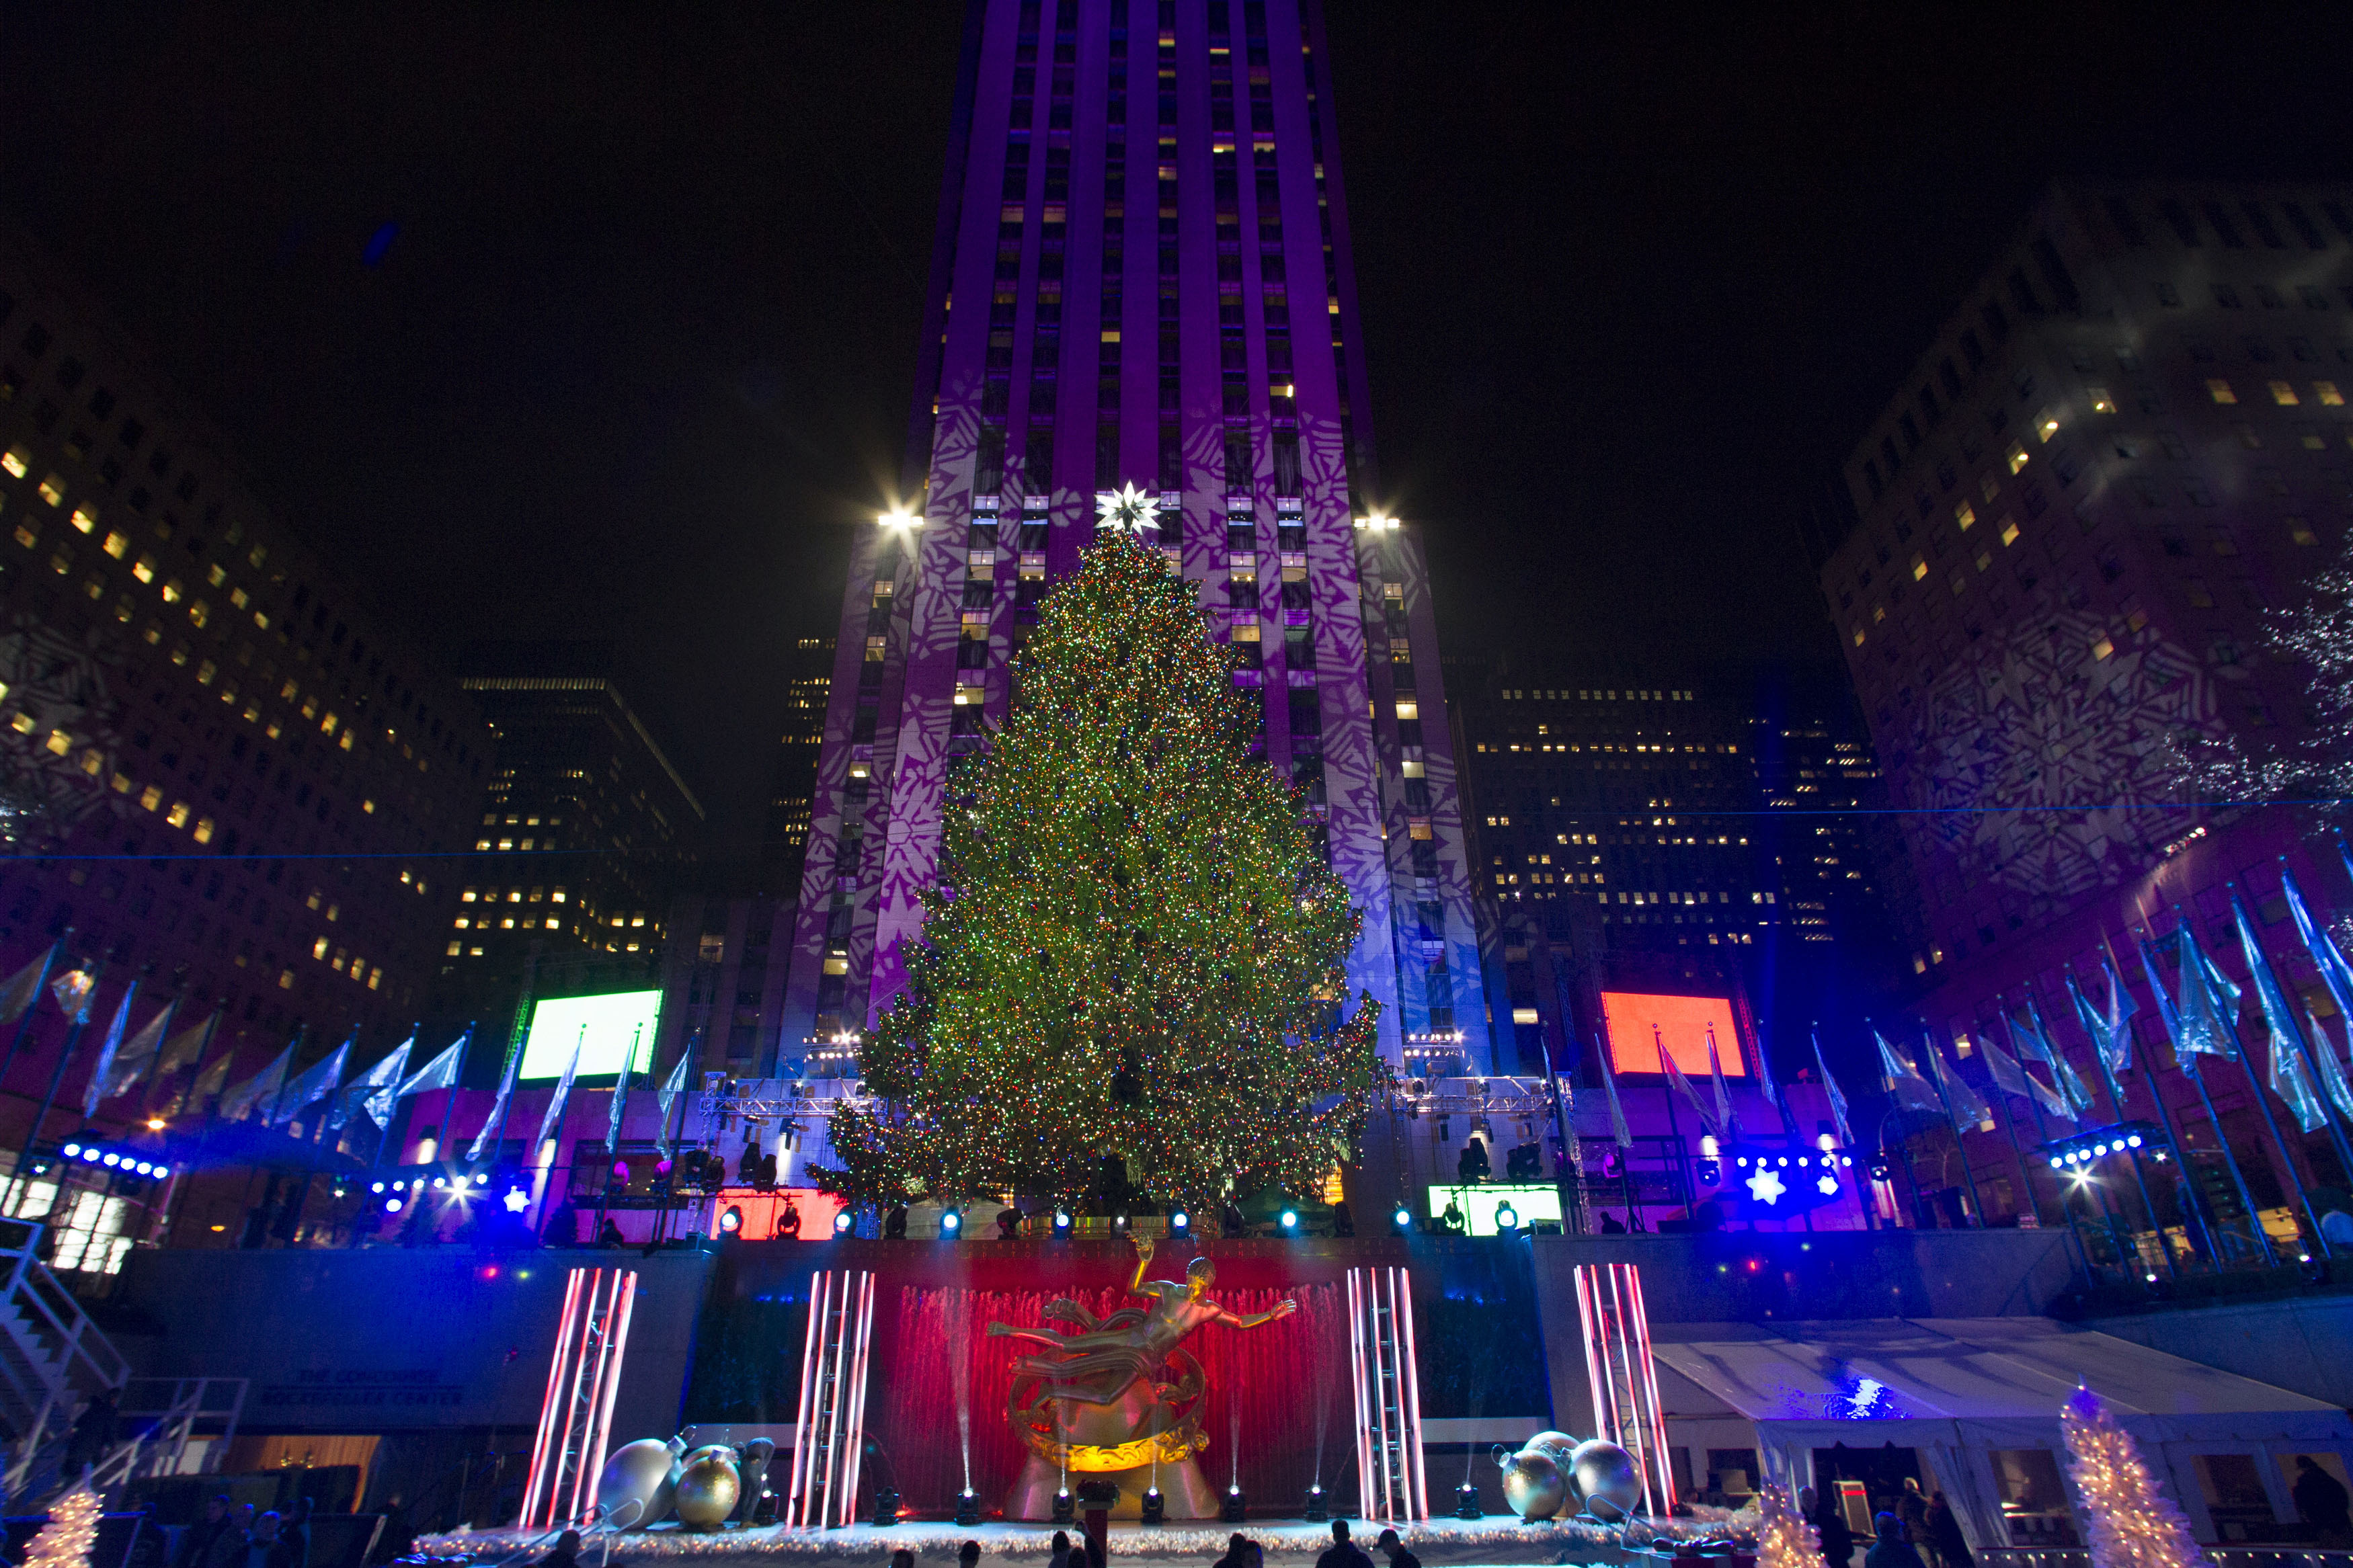 Rockefeller Center Christmas Tree Lighting 2014: When And